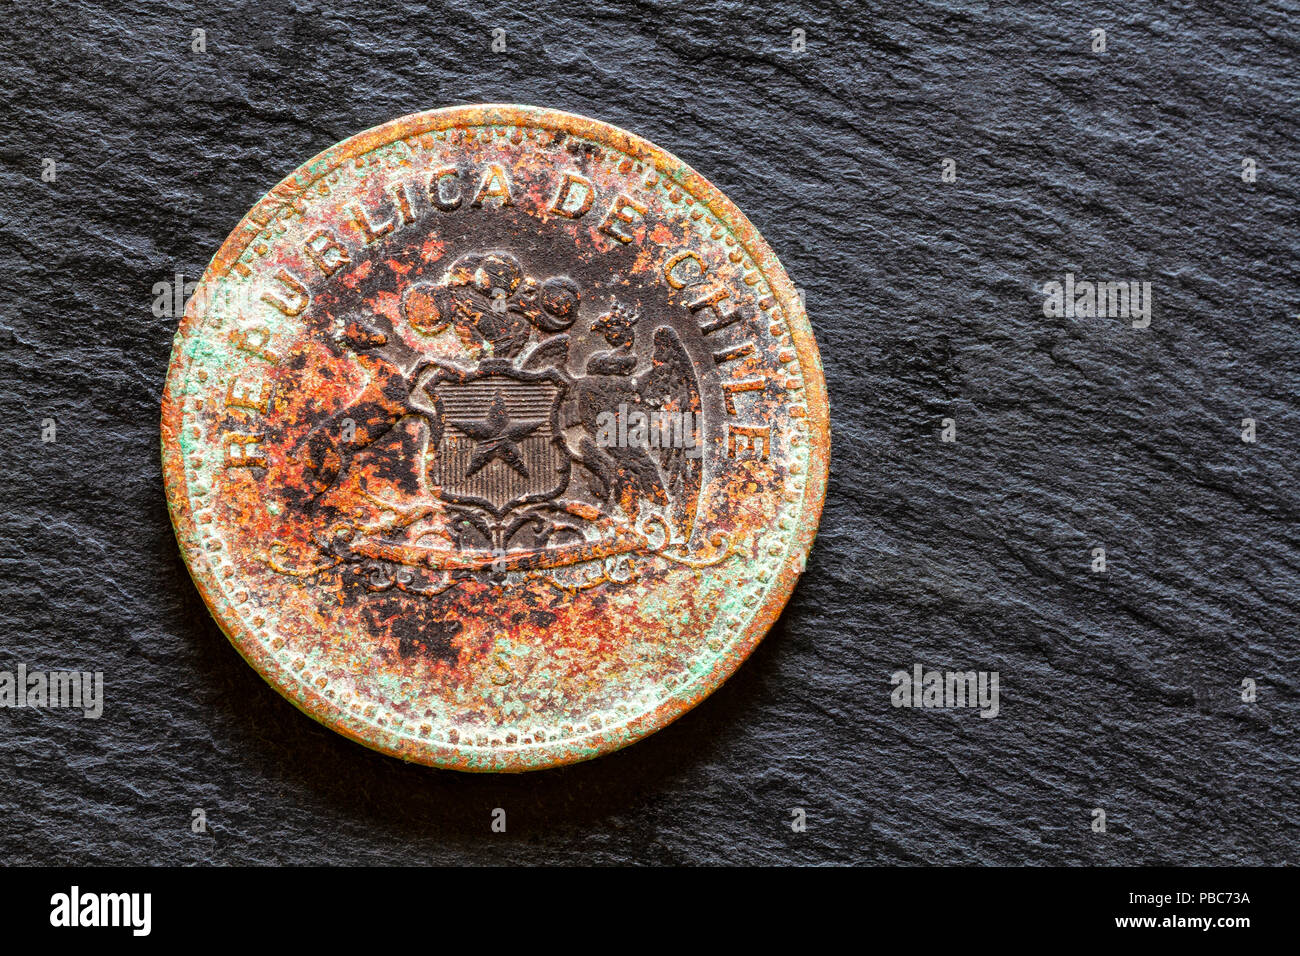 Corroded coin of 100 Chilean pesos from 1981. - Stock Image